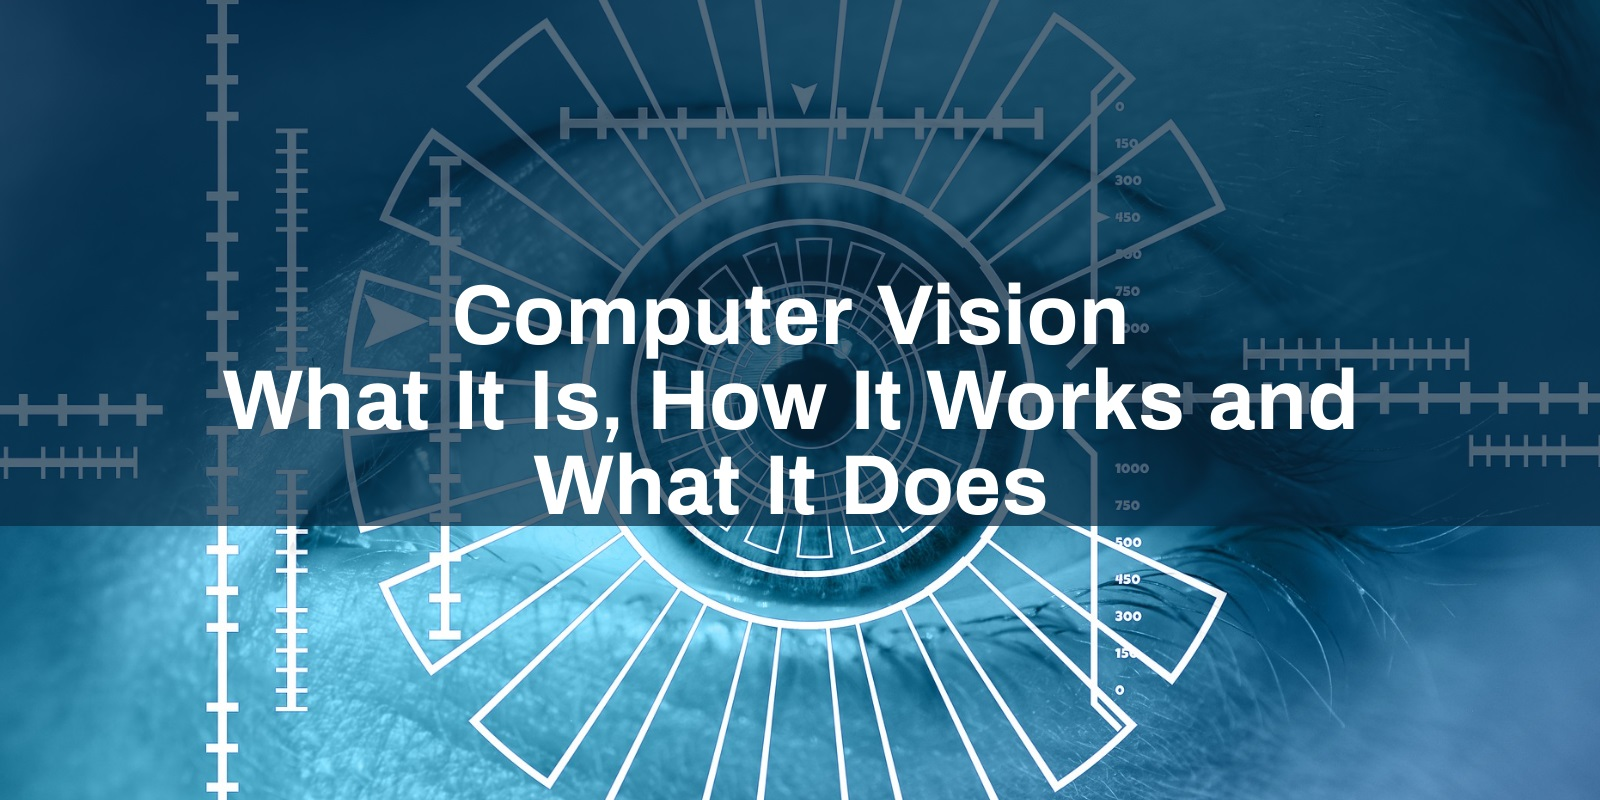 Computer vision and its applications